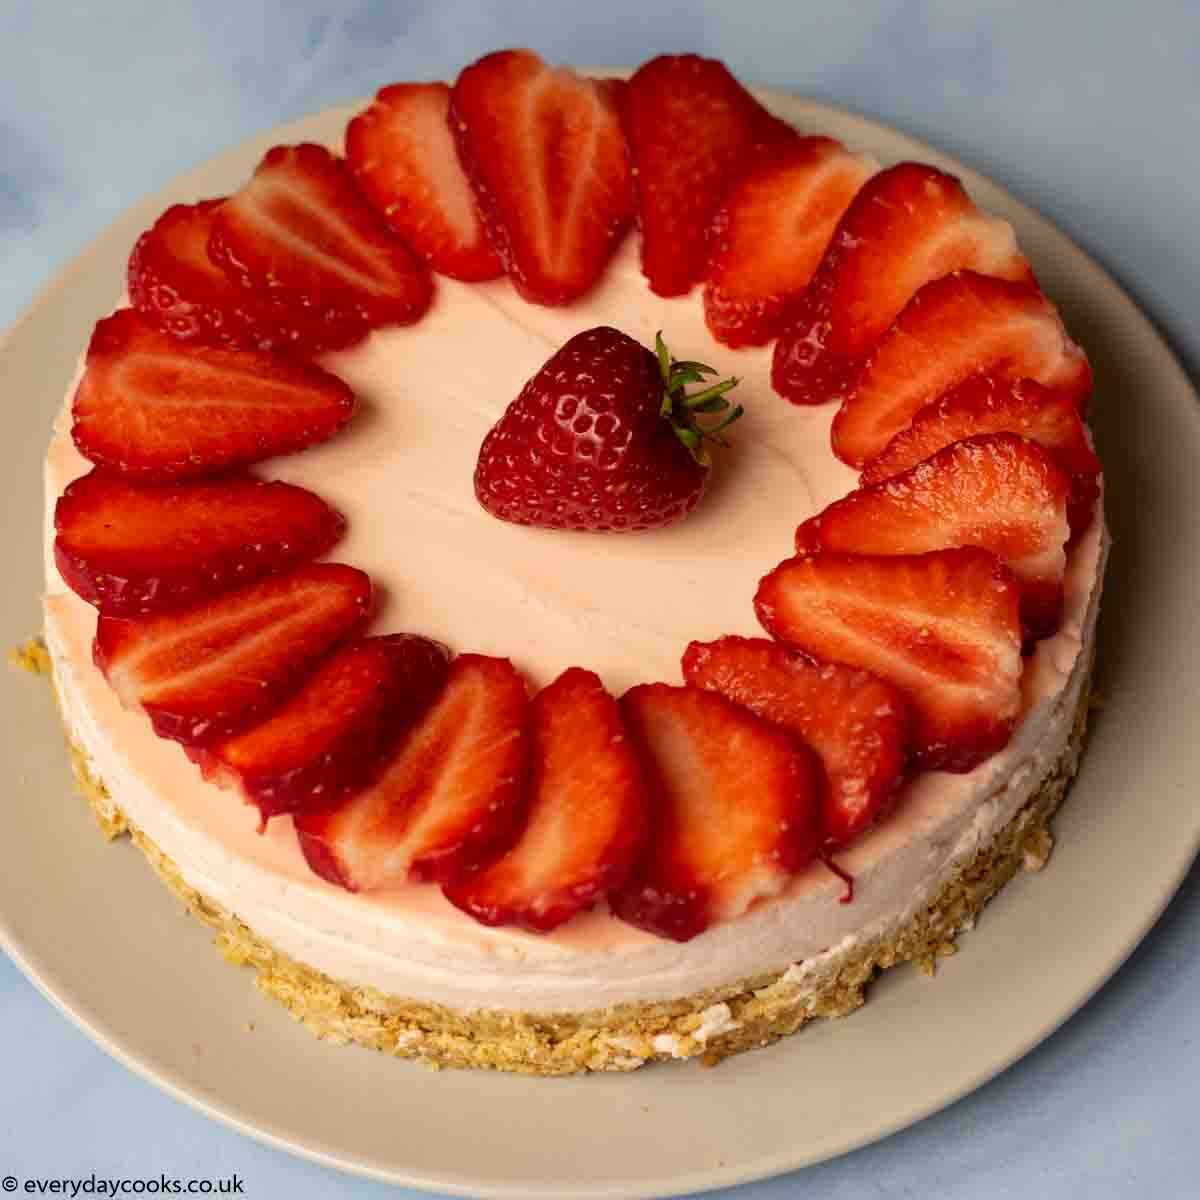 Easy Strawberry Cheesecake topped with sliced strawberries on a grey plate on a blue worktop.